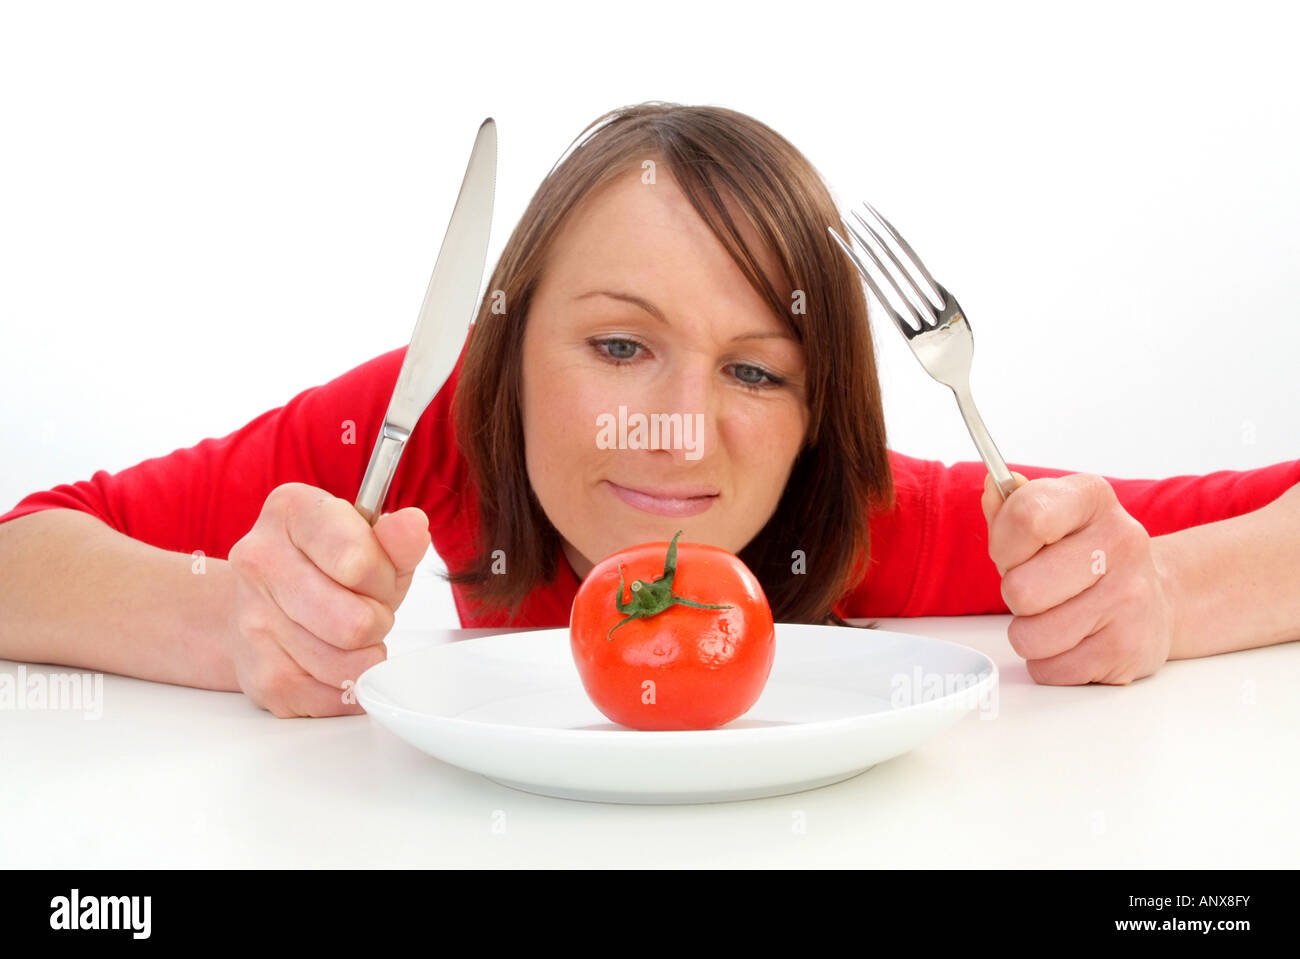 woman with tomato at plate Stock Photo